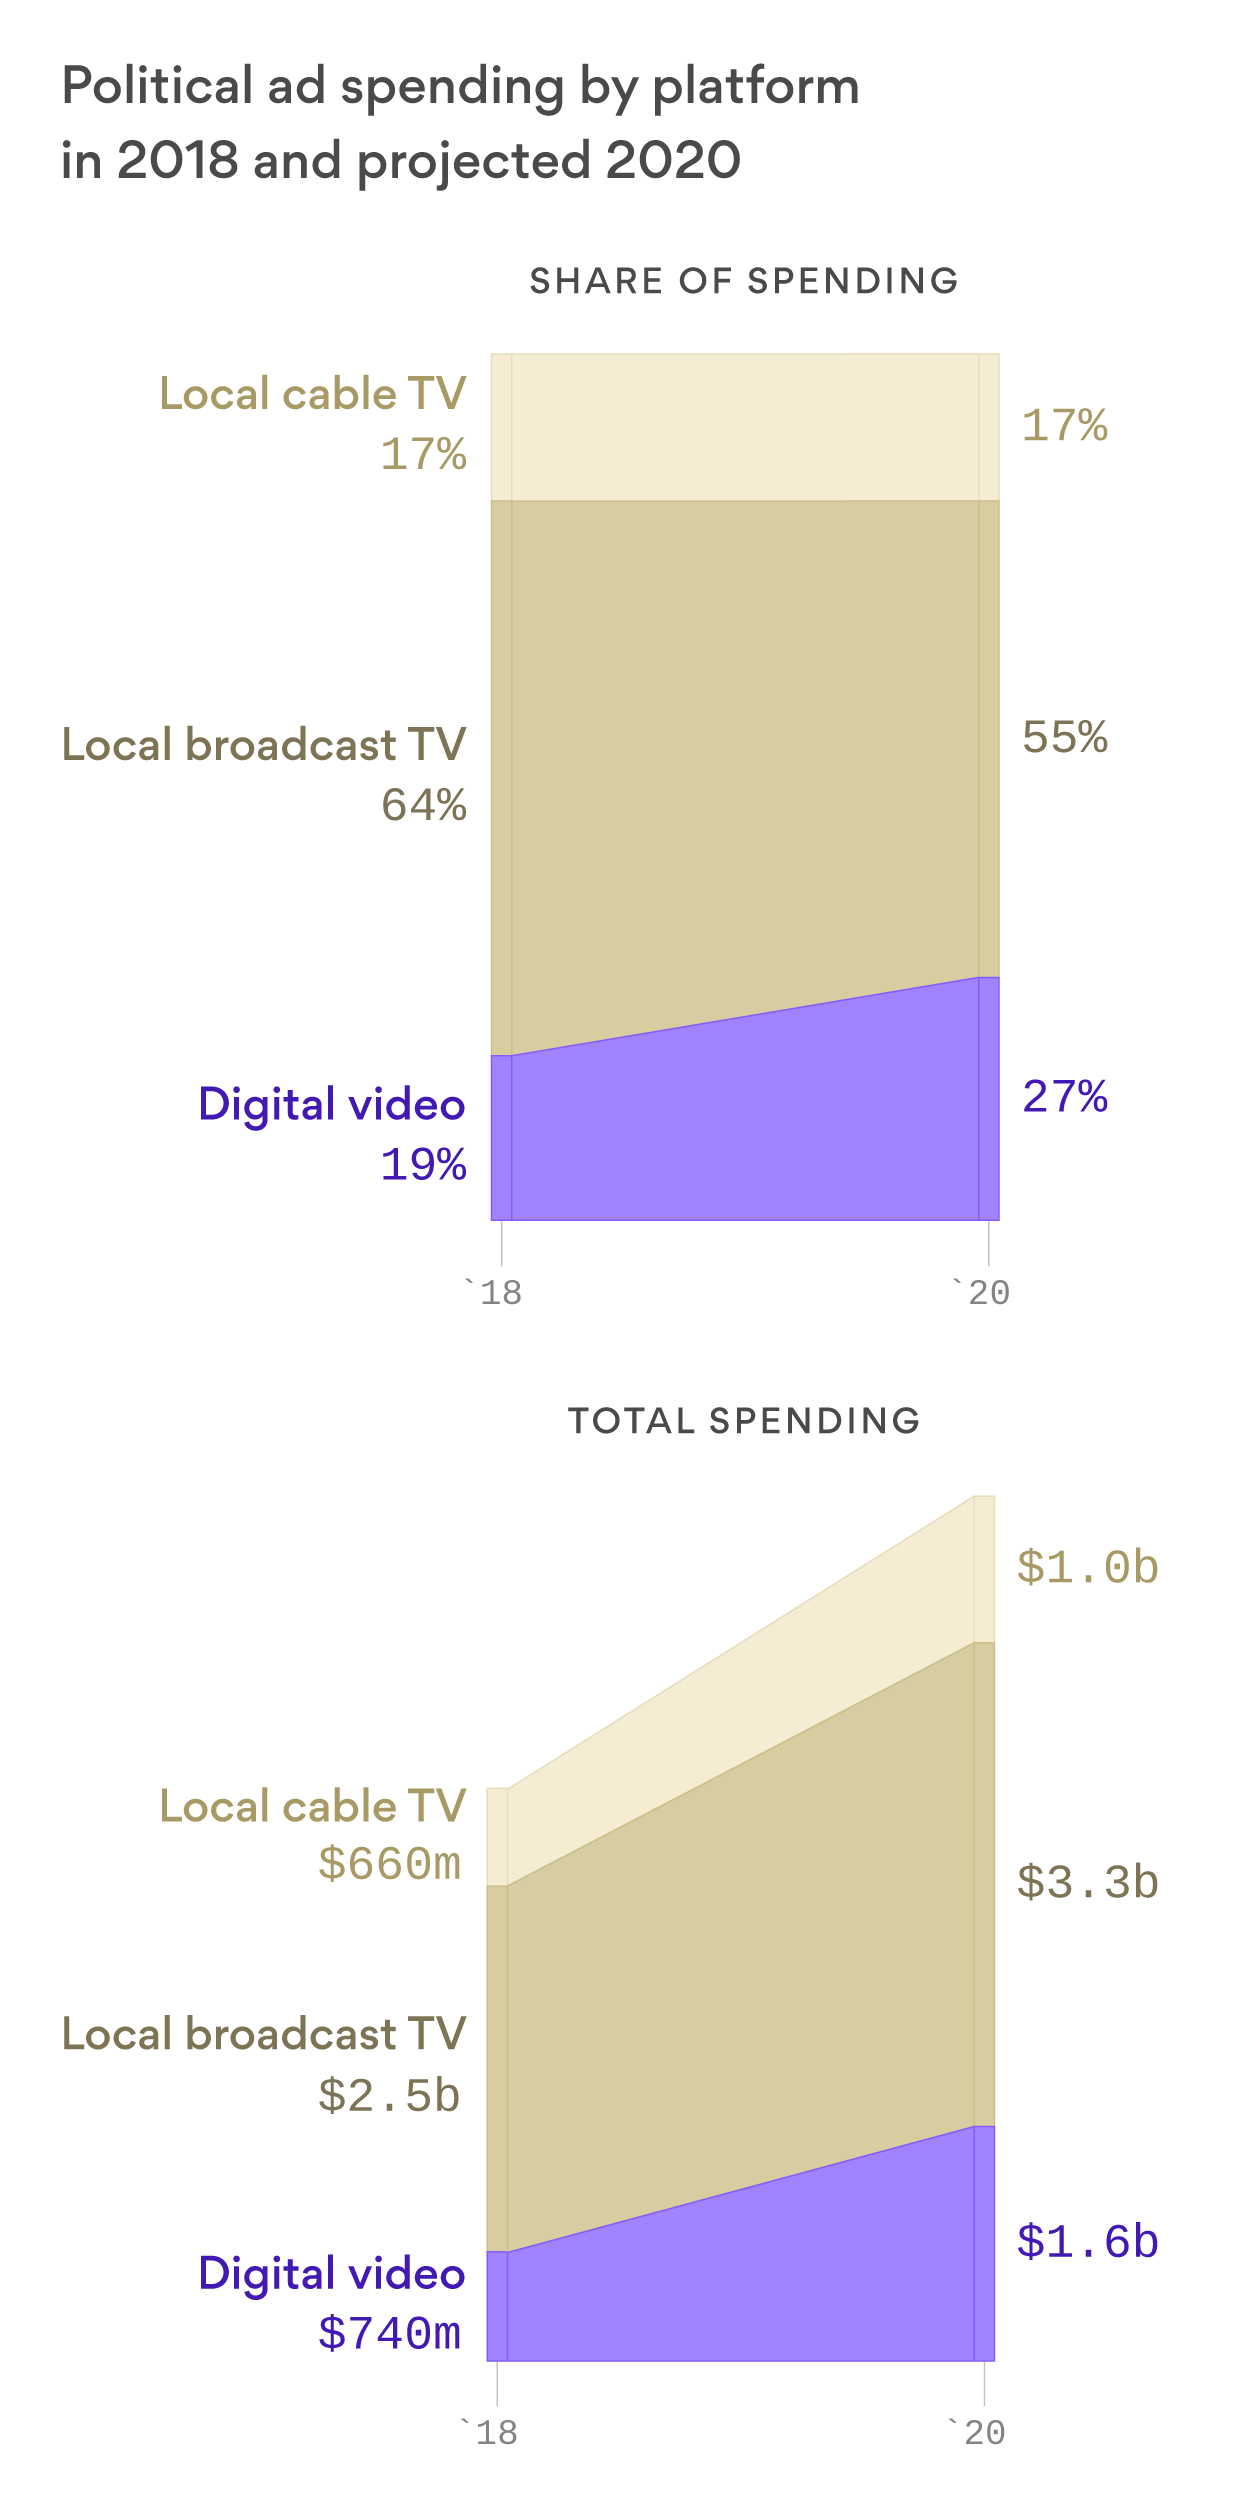 The video ad market for politics is expected to grow by $2 billion between 2018 and 2020